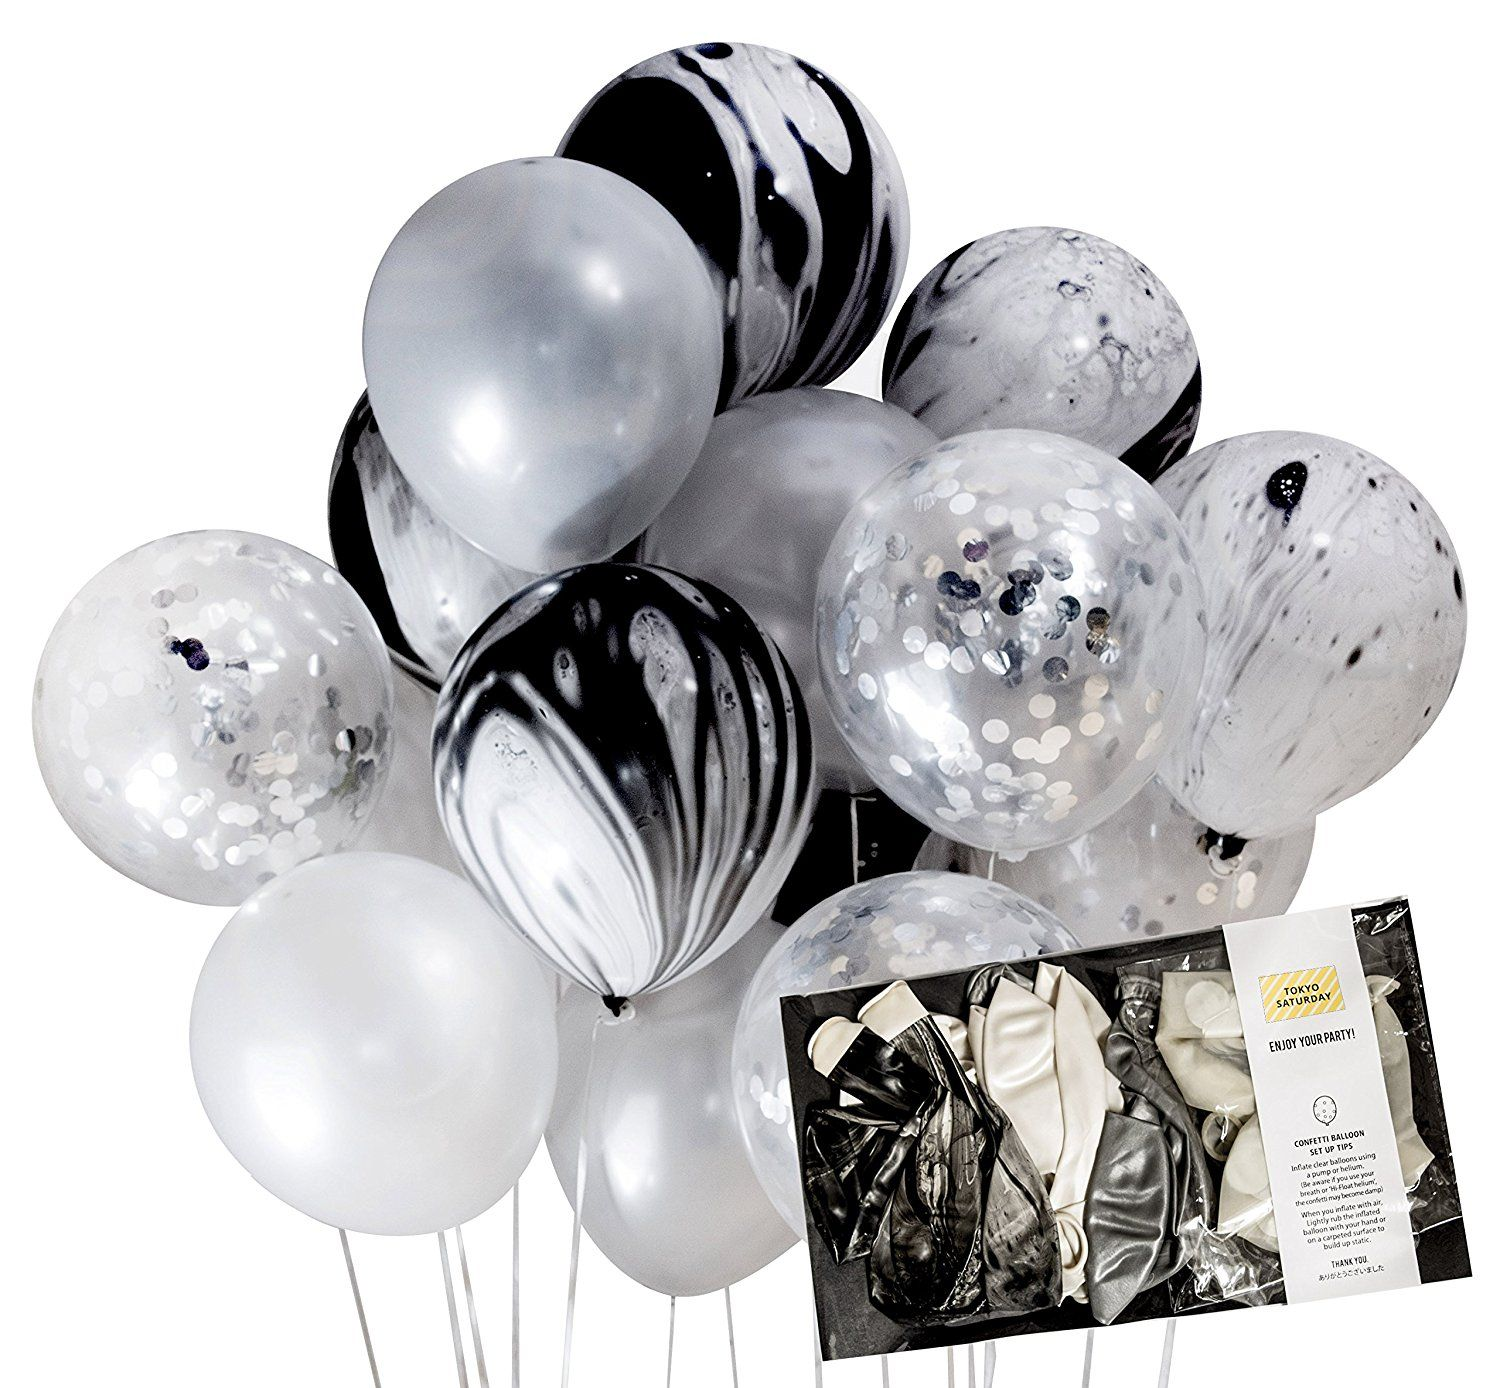 Silver 10 40 inch Silver 10 Number Jumbo Foil Mylar Helium Balloons-Party Decoration Supplies Balloons-Great for 10th Birthday Any Anniversary Parties Events